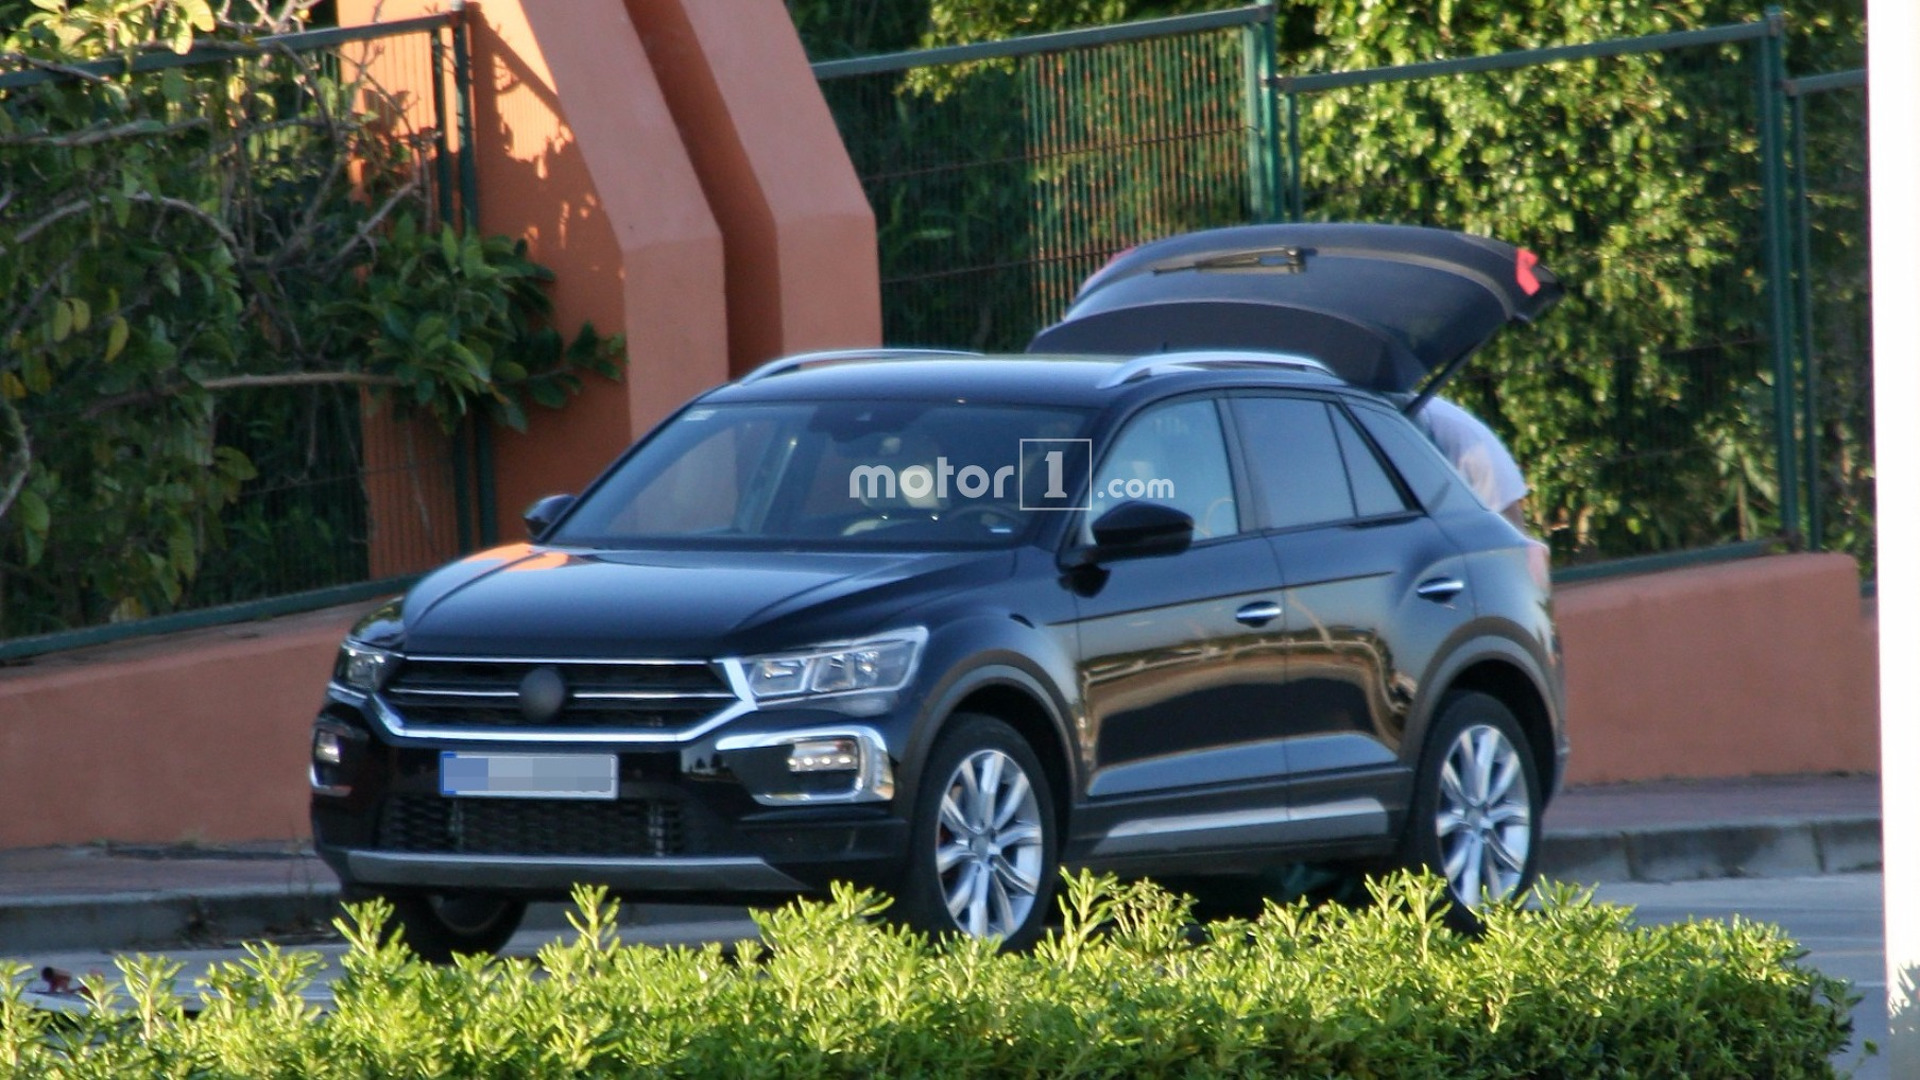 vw t roc could be brand 39 s first car with mild hybrid system. Black Bedroom Furniture Sets. Home Design Ideas